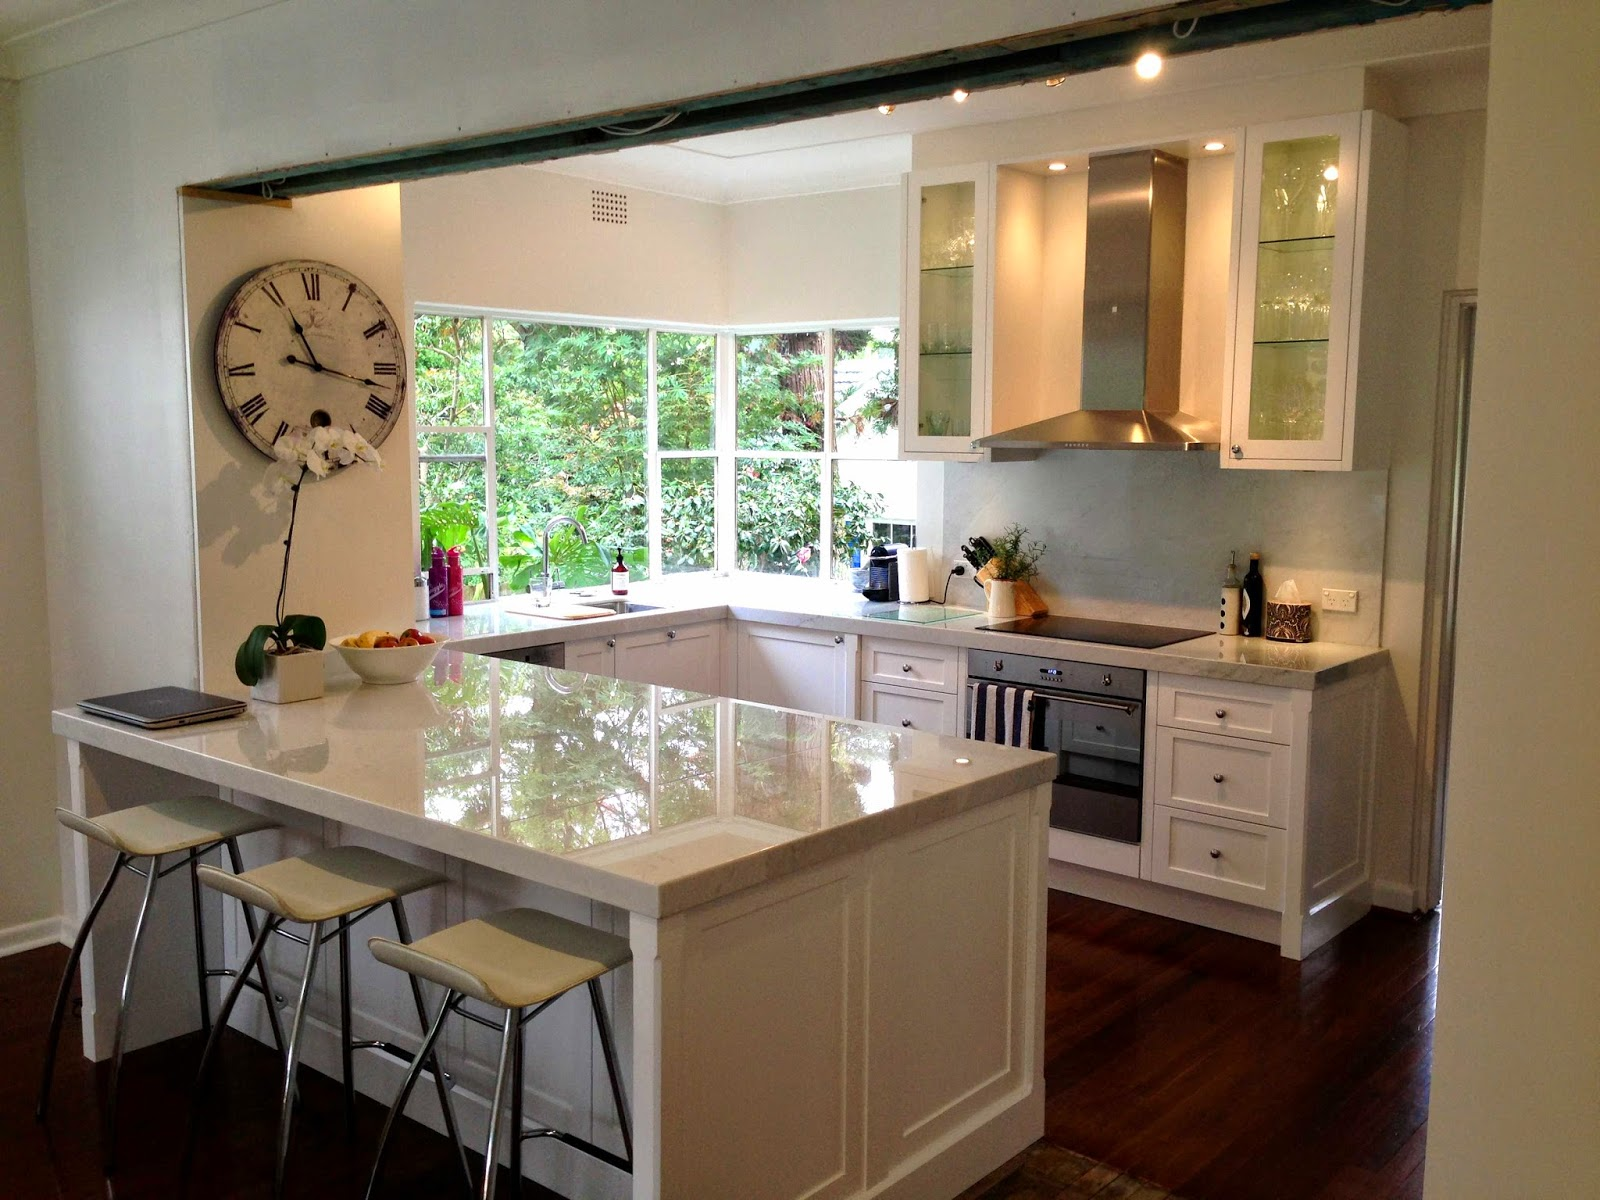 Matt michel design custom built in furniture kitchen for Hampton style kitchen stools